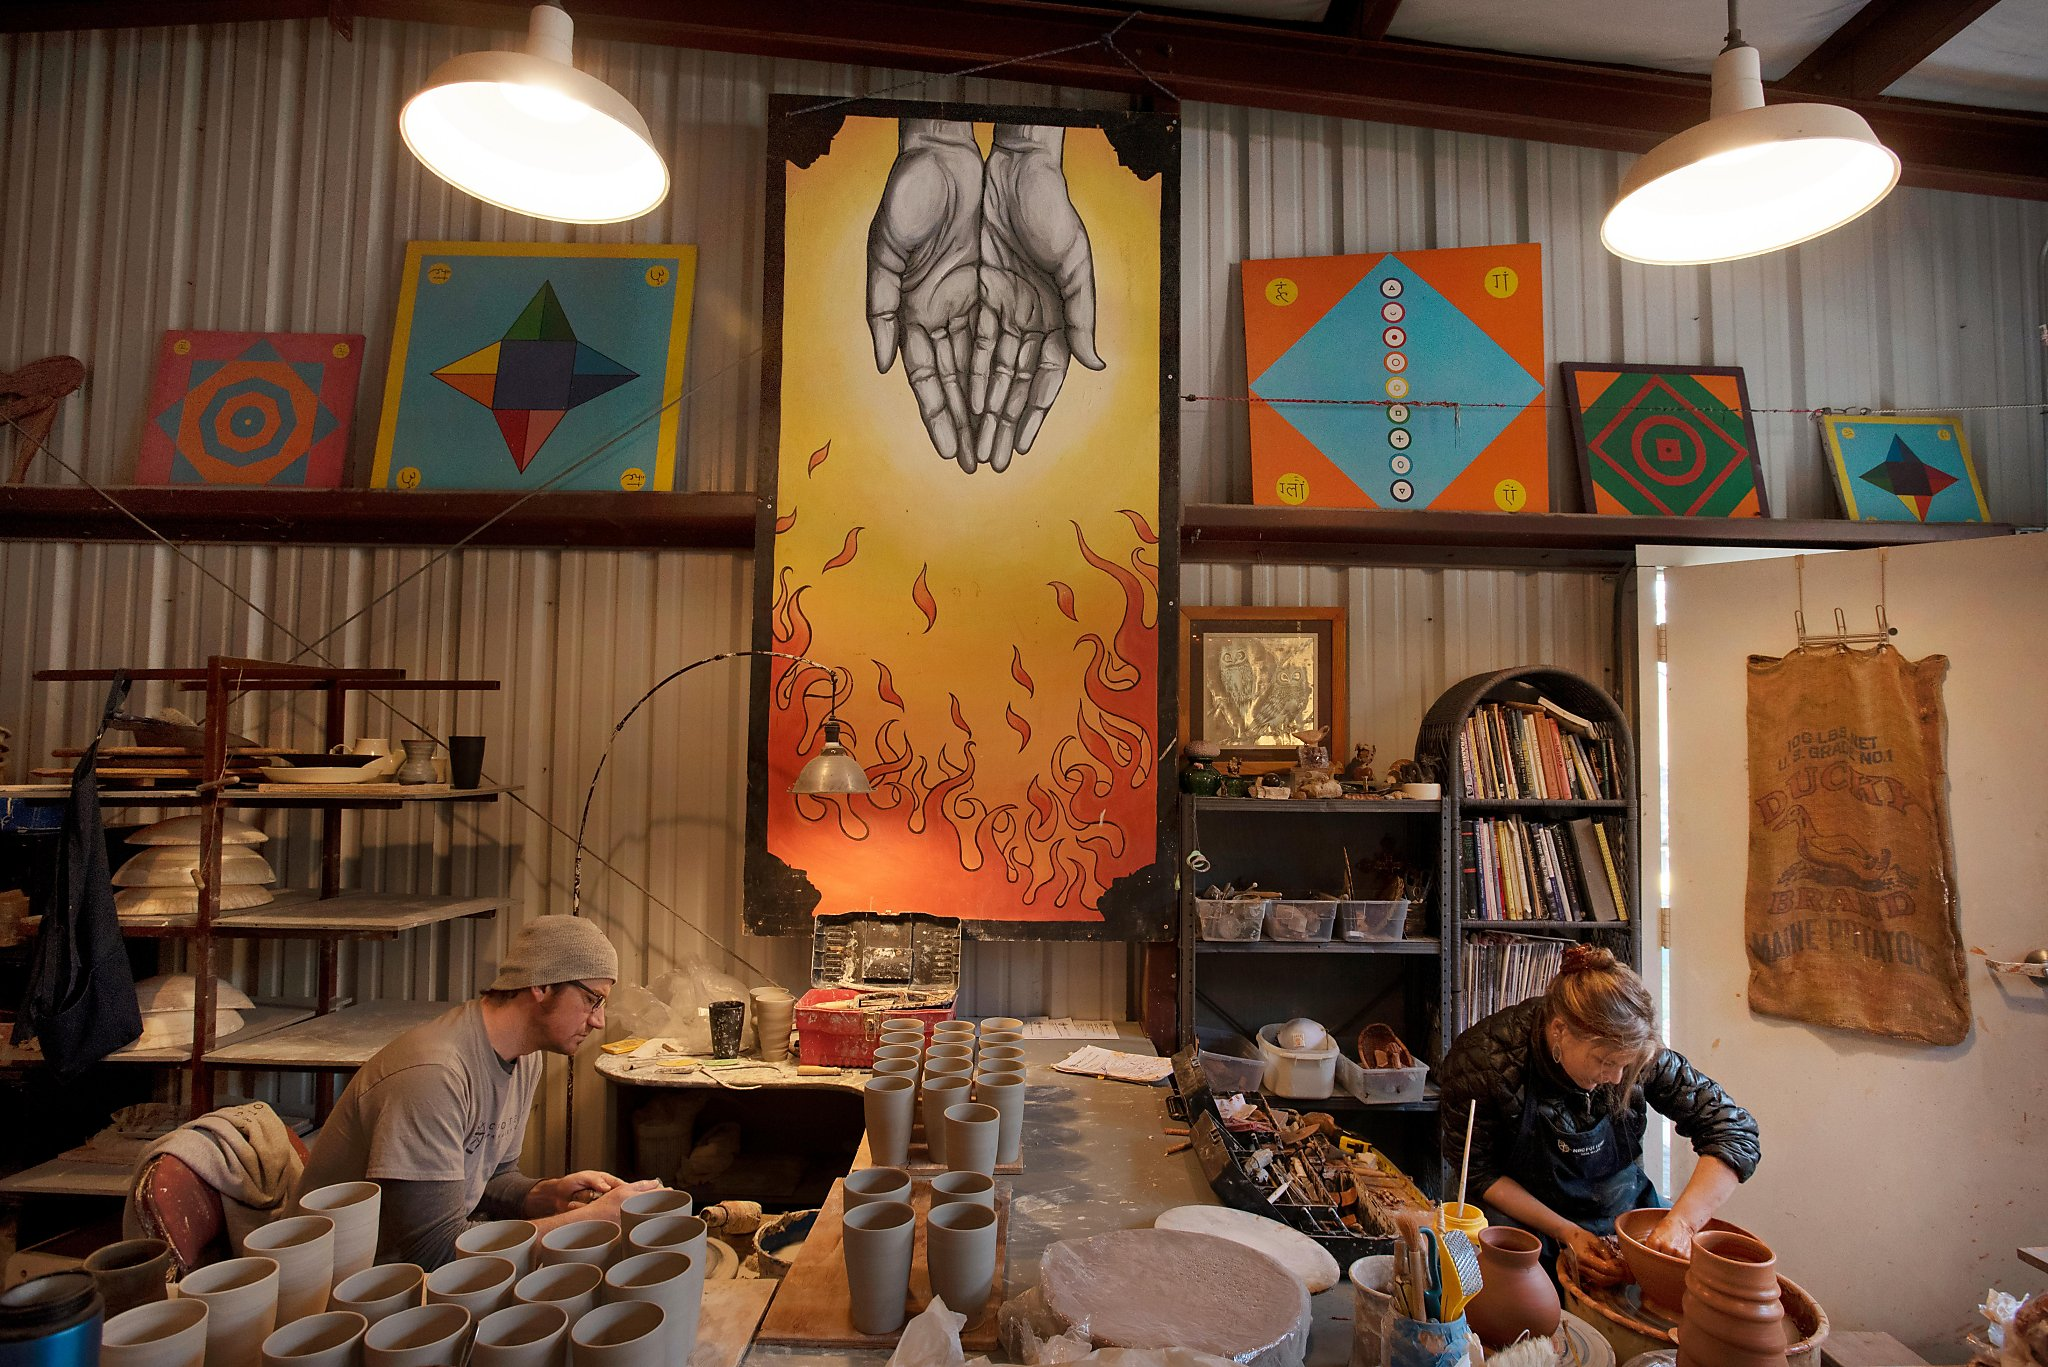 Where do Napa's top restaurants get their plates and platters? From this two-person pottery studio